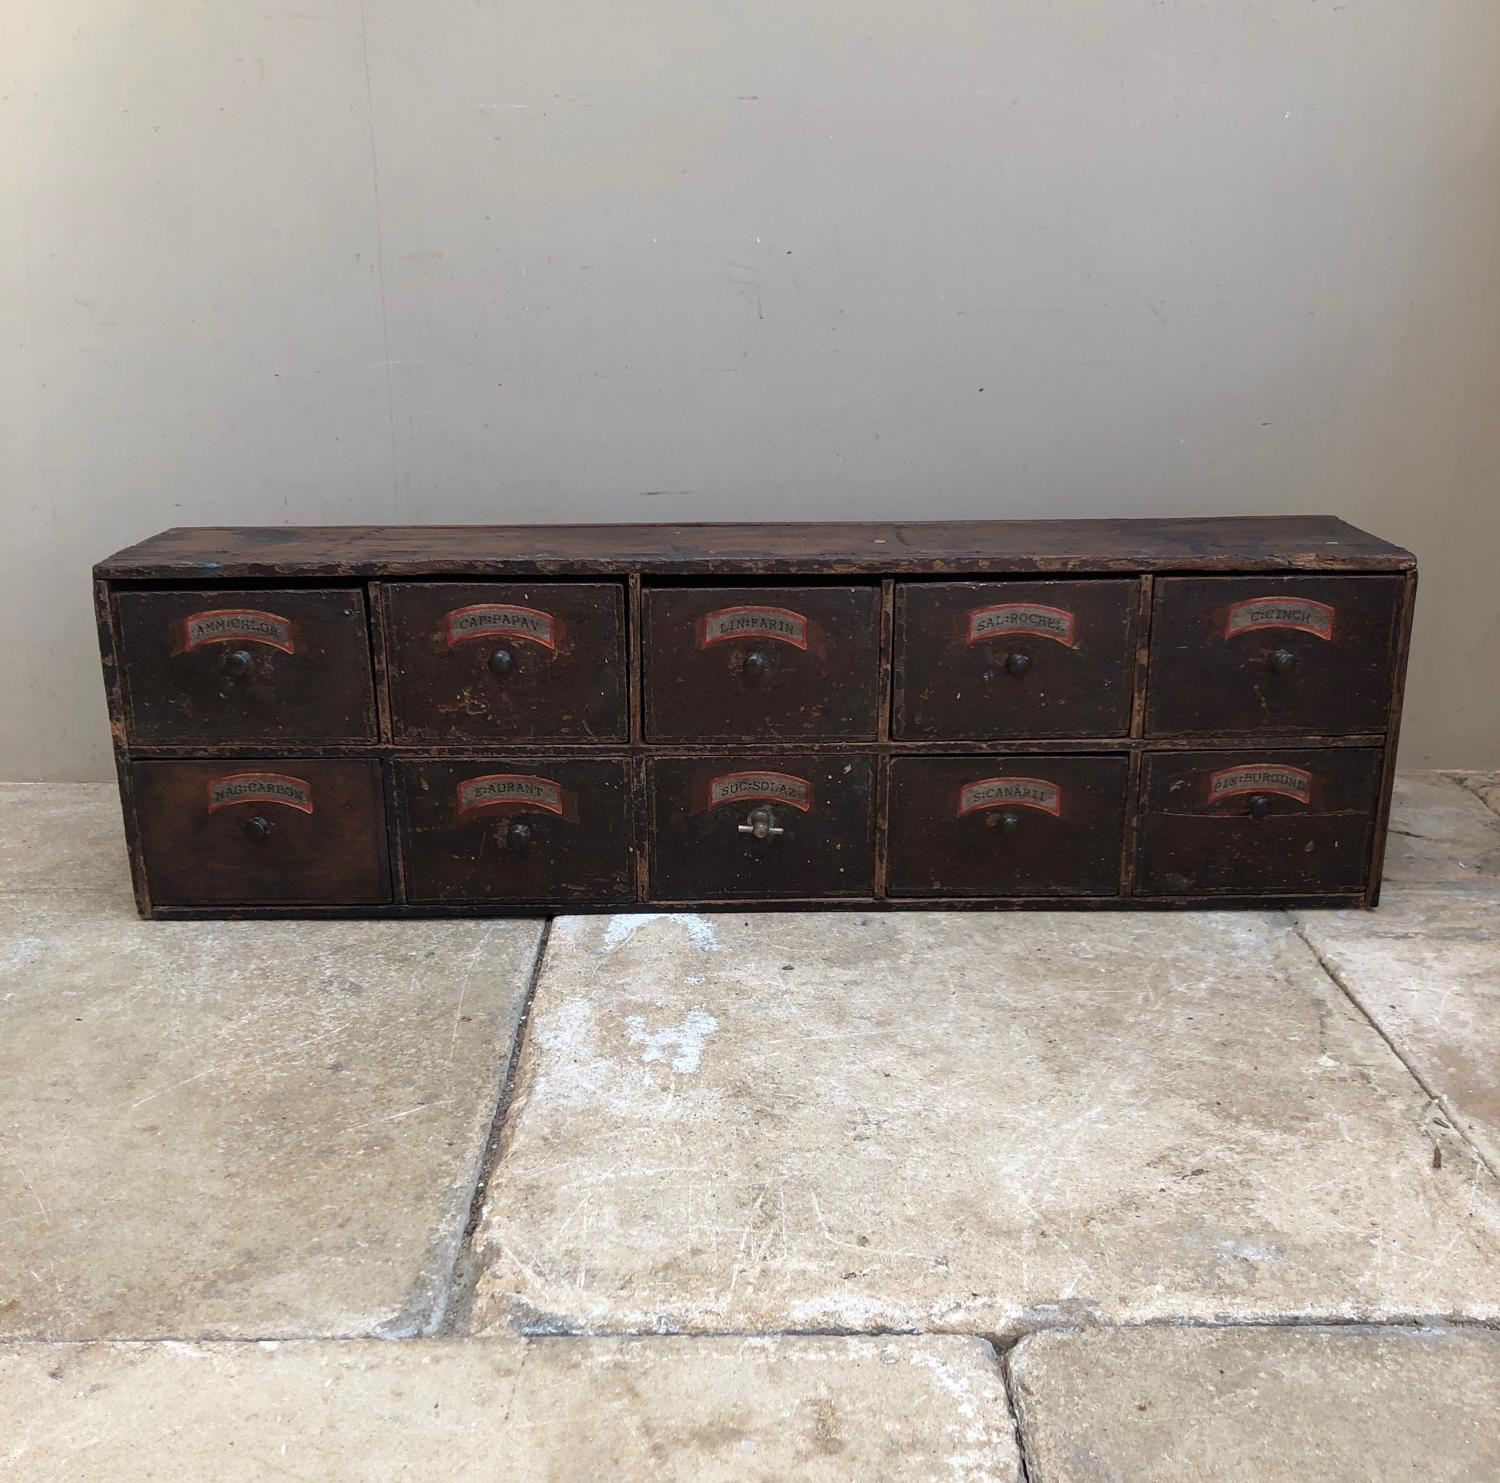 Victorian Pine Bank of Ten Apothecary Drawers - Original Paint